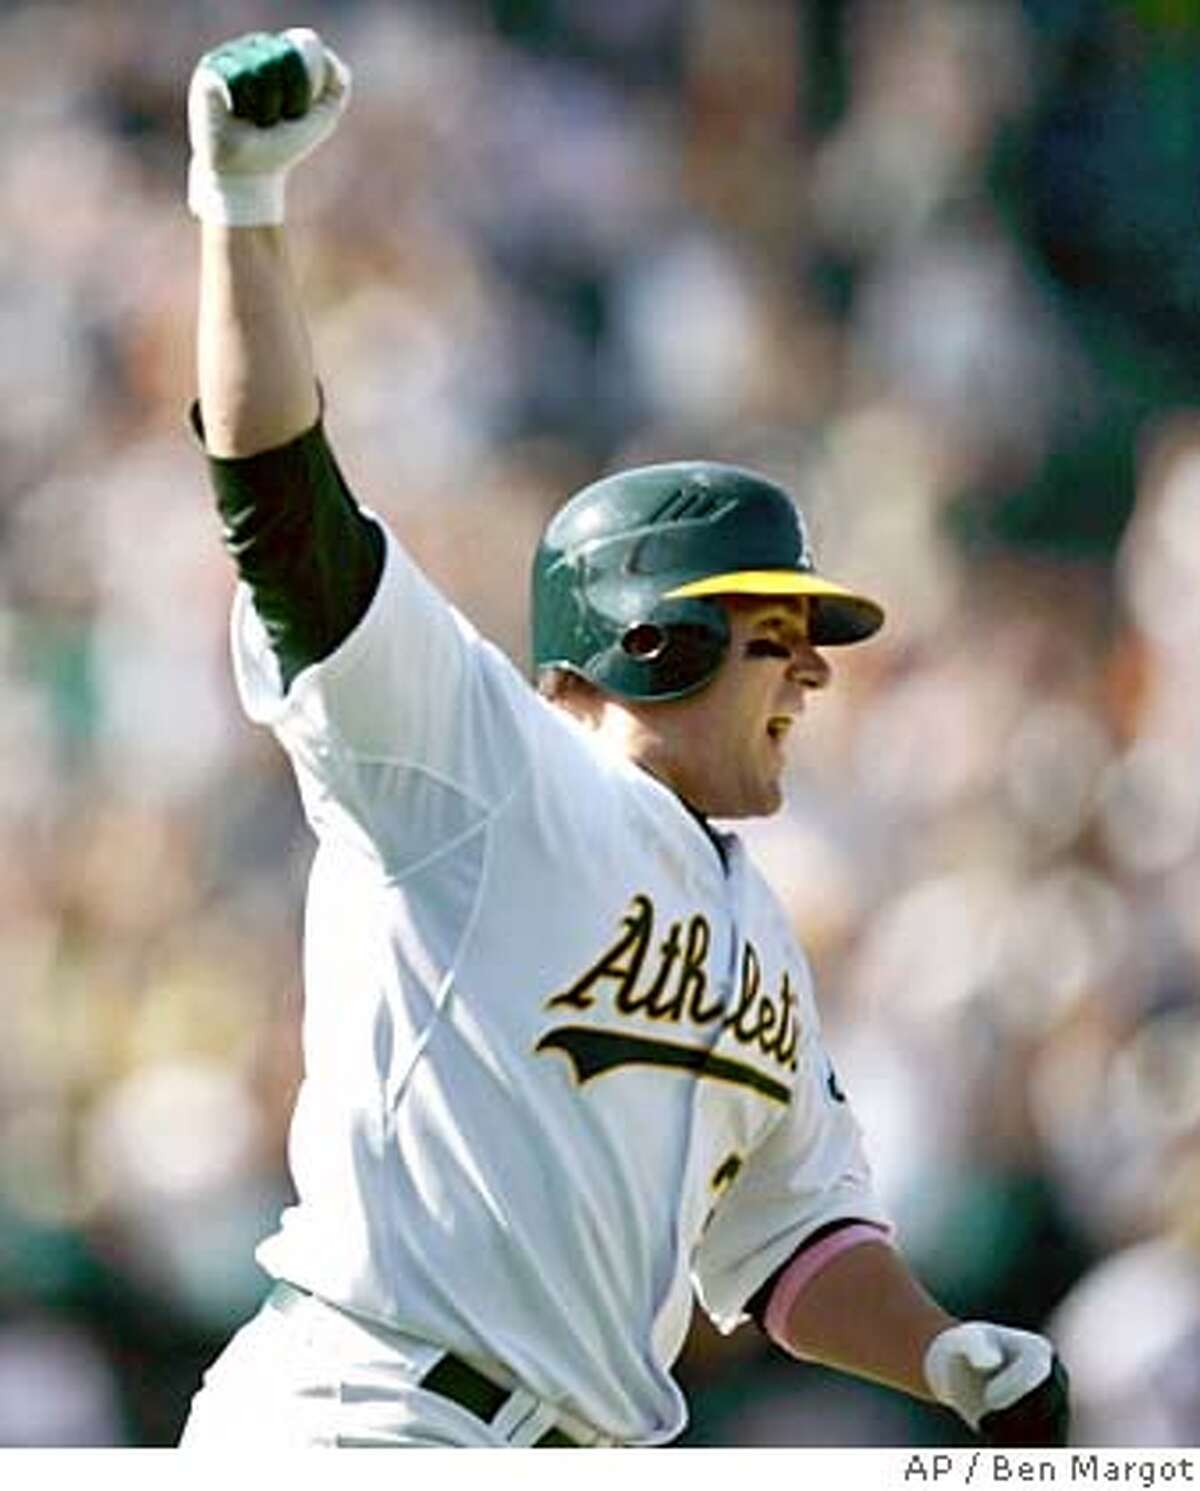 Oakland Athletics' Jack Cust celebrates after hitting a three-run walk-off home run off Cleveland Indians' Fernando Cabrera to win the baseball game 10-7 Sunday, May 13, 2007, in Oakland, Calif. (AP Photo/Ben Margot)